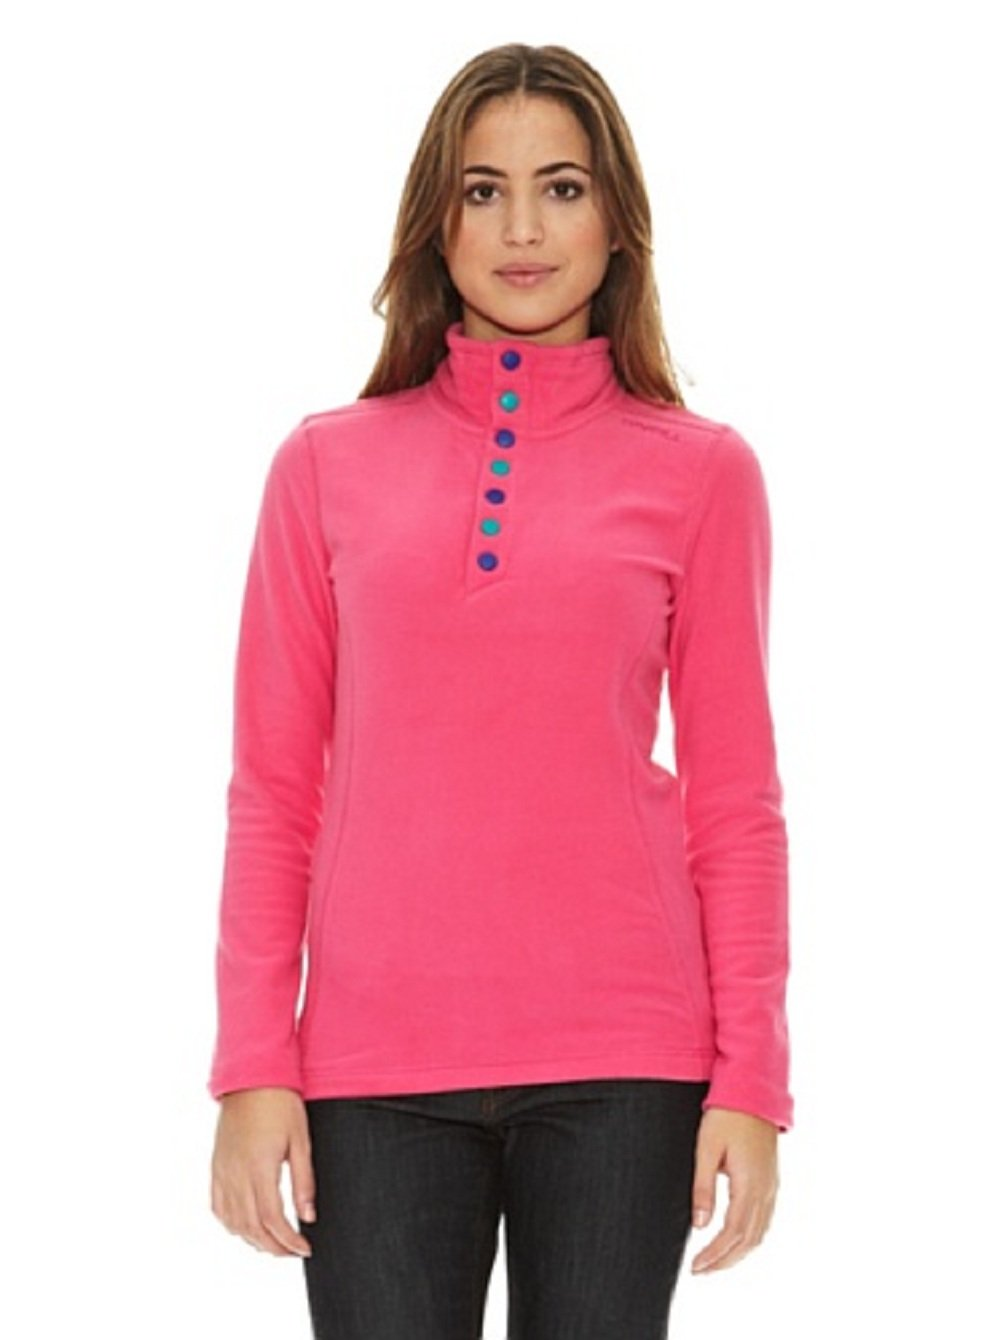 O'Neill Damen Fleece PWTF Button